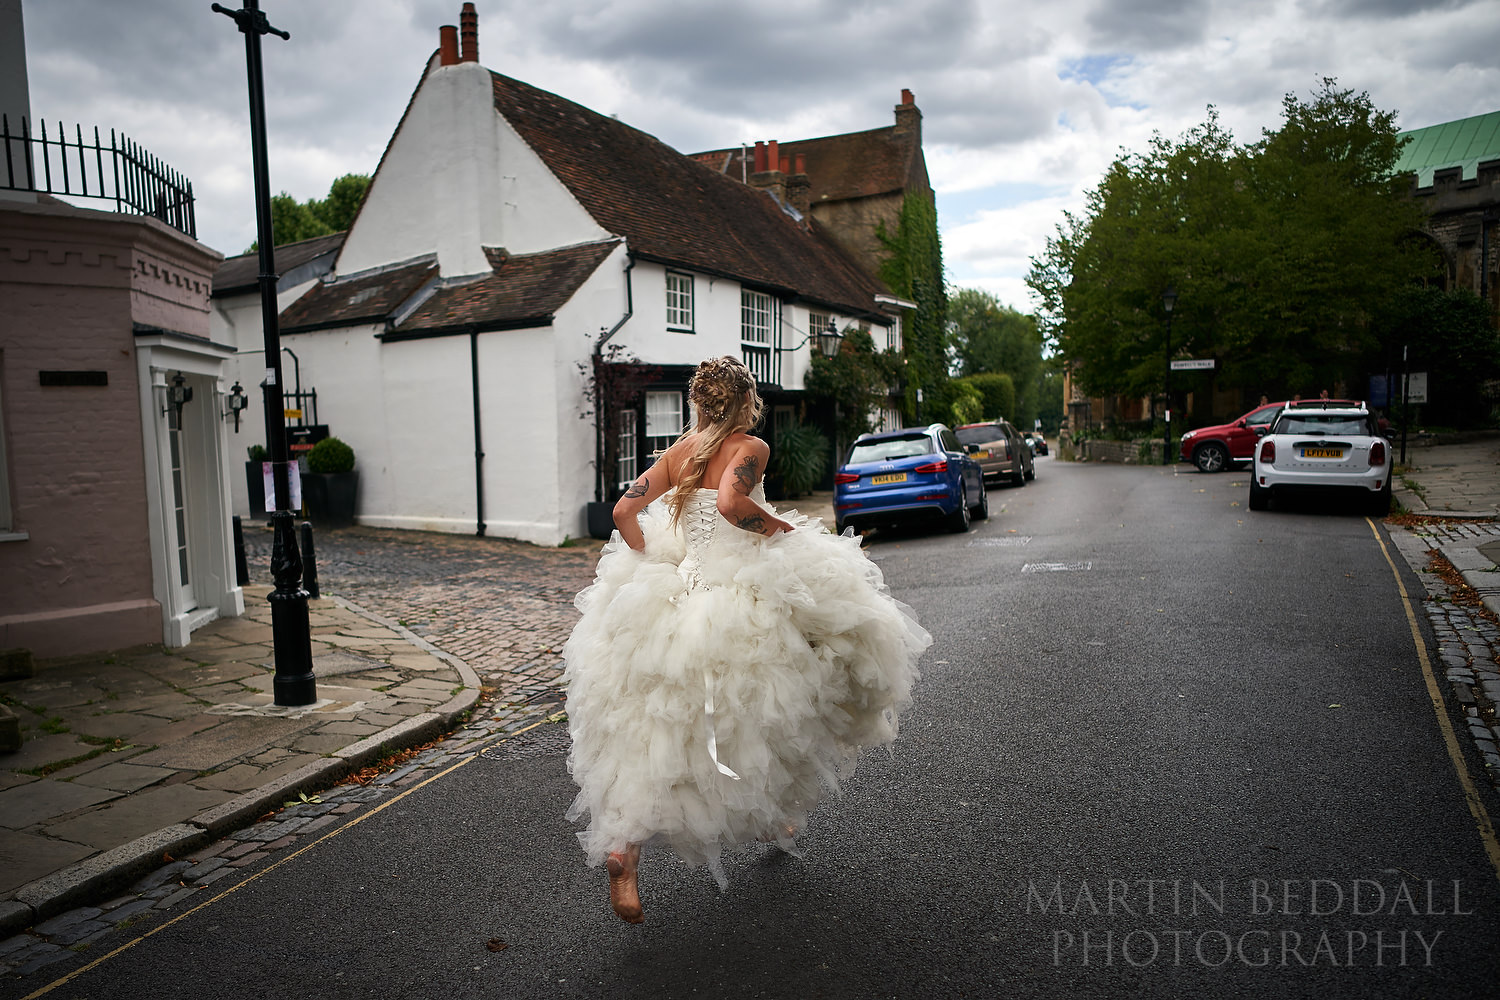 Running a bit late the bride starts to run to the church, barefoot.